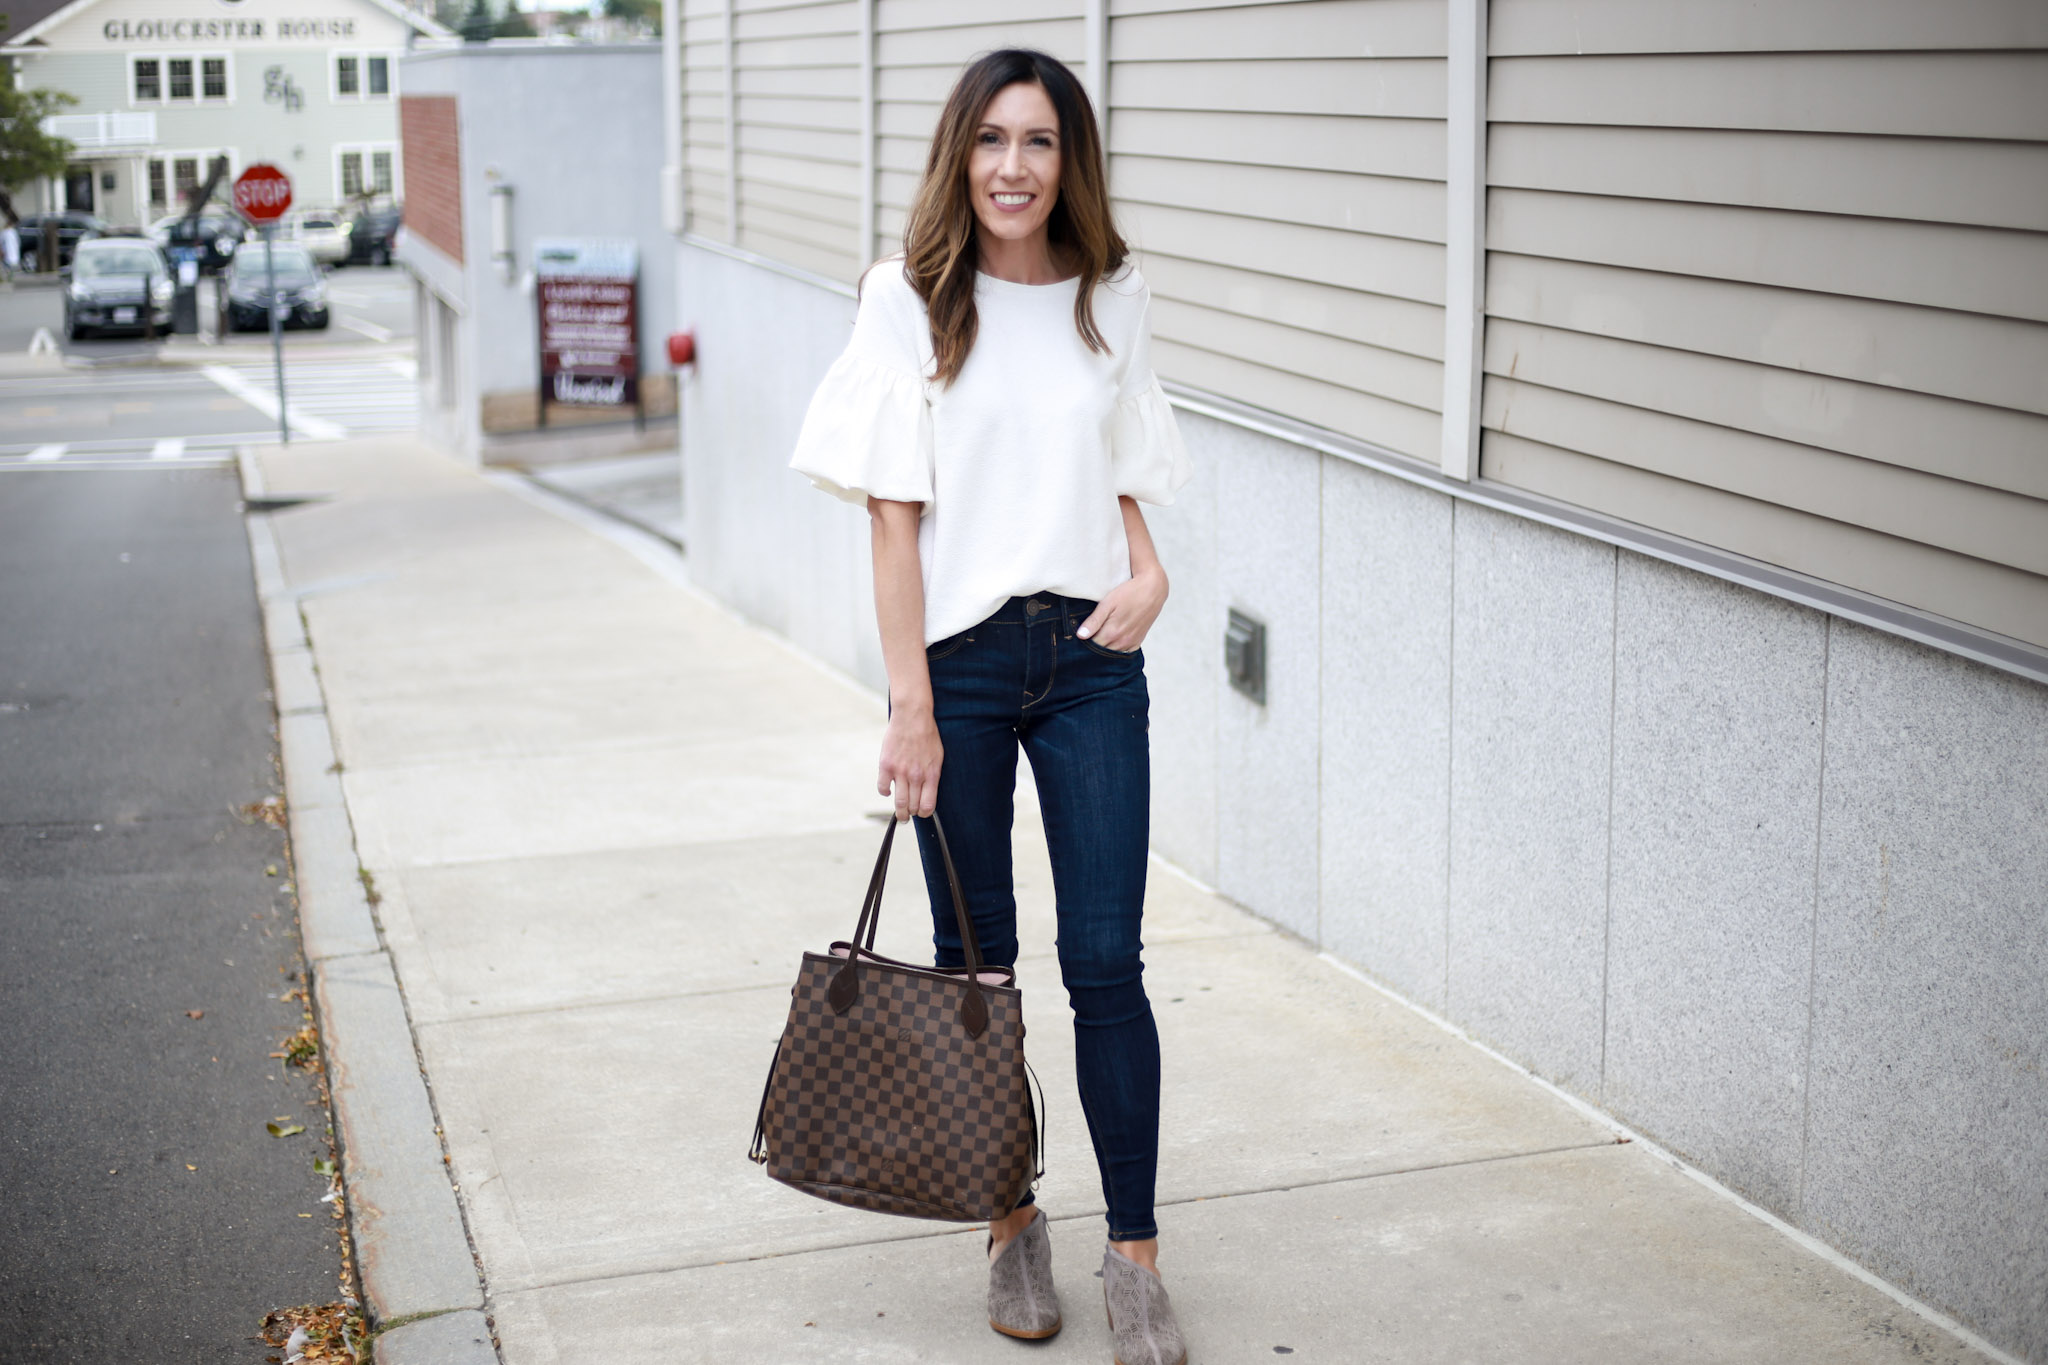 great jeans are essential in any great capsule wardrobe - Capsule Wardrobe Series - Skinny Jeans by Boston fashion blogger Living Life Pretty